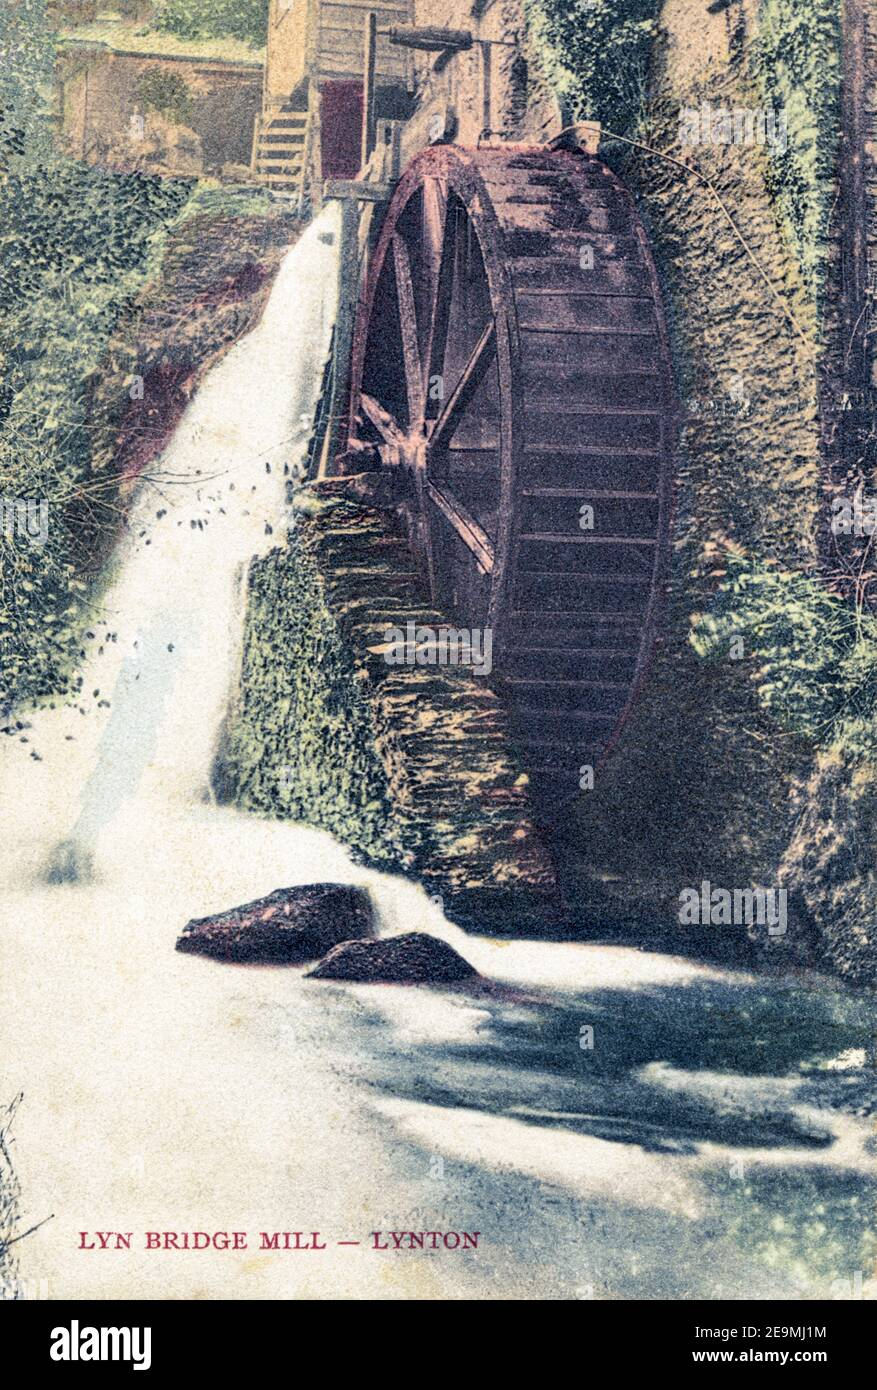 A coloured postcard of Lyn Bridge Mill, Lynton posted in 1905 Stock Photo